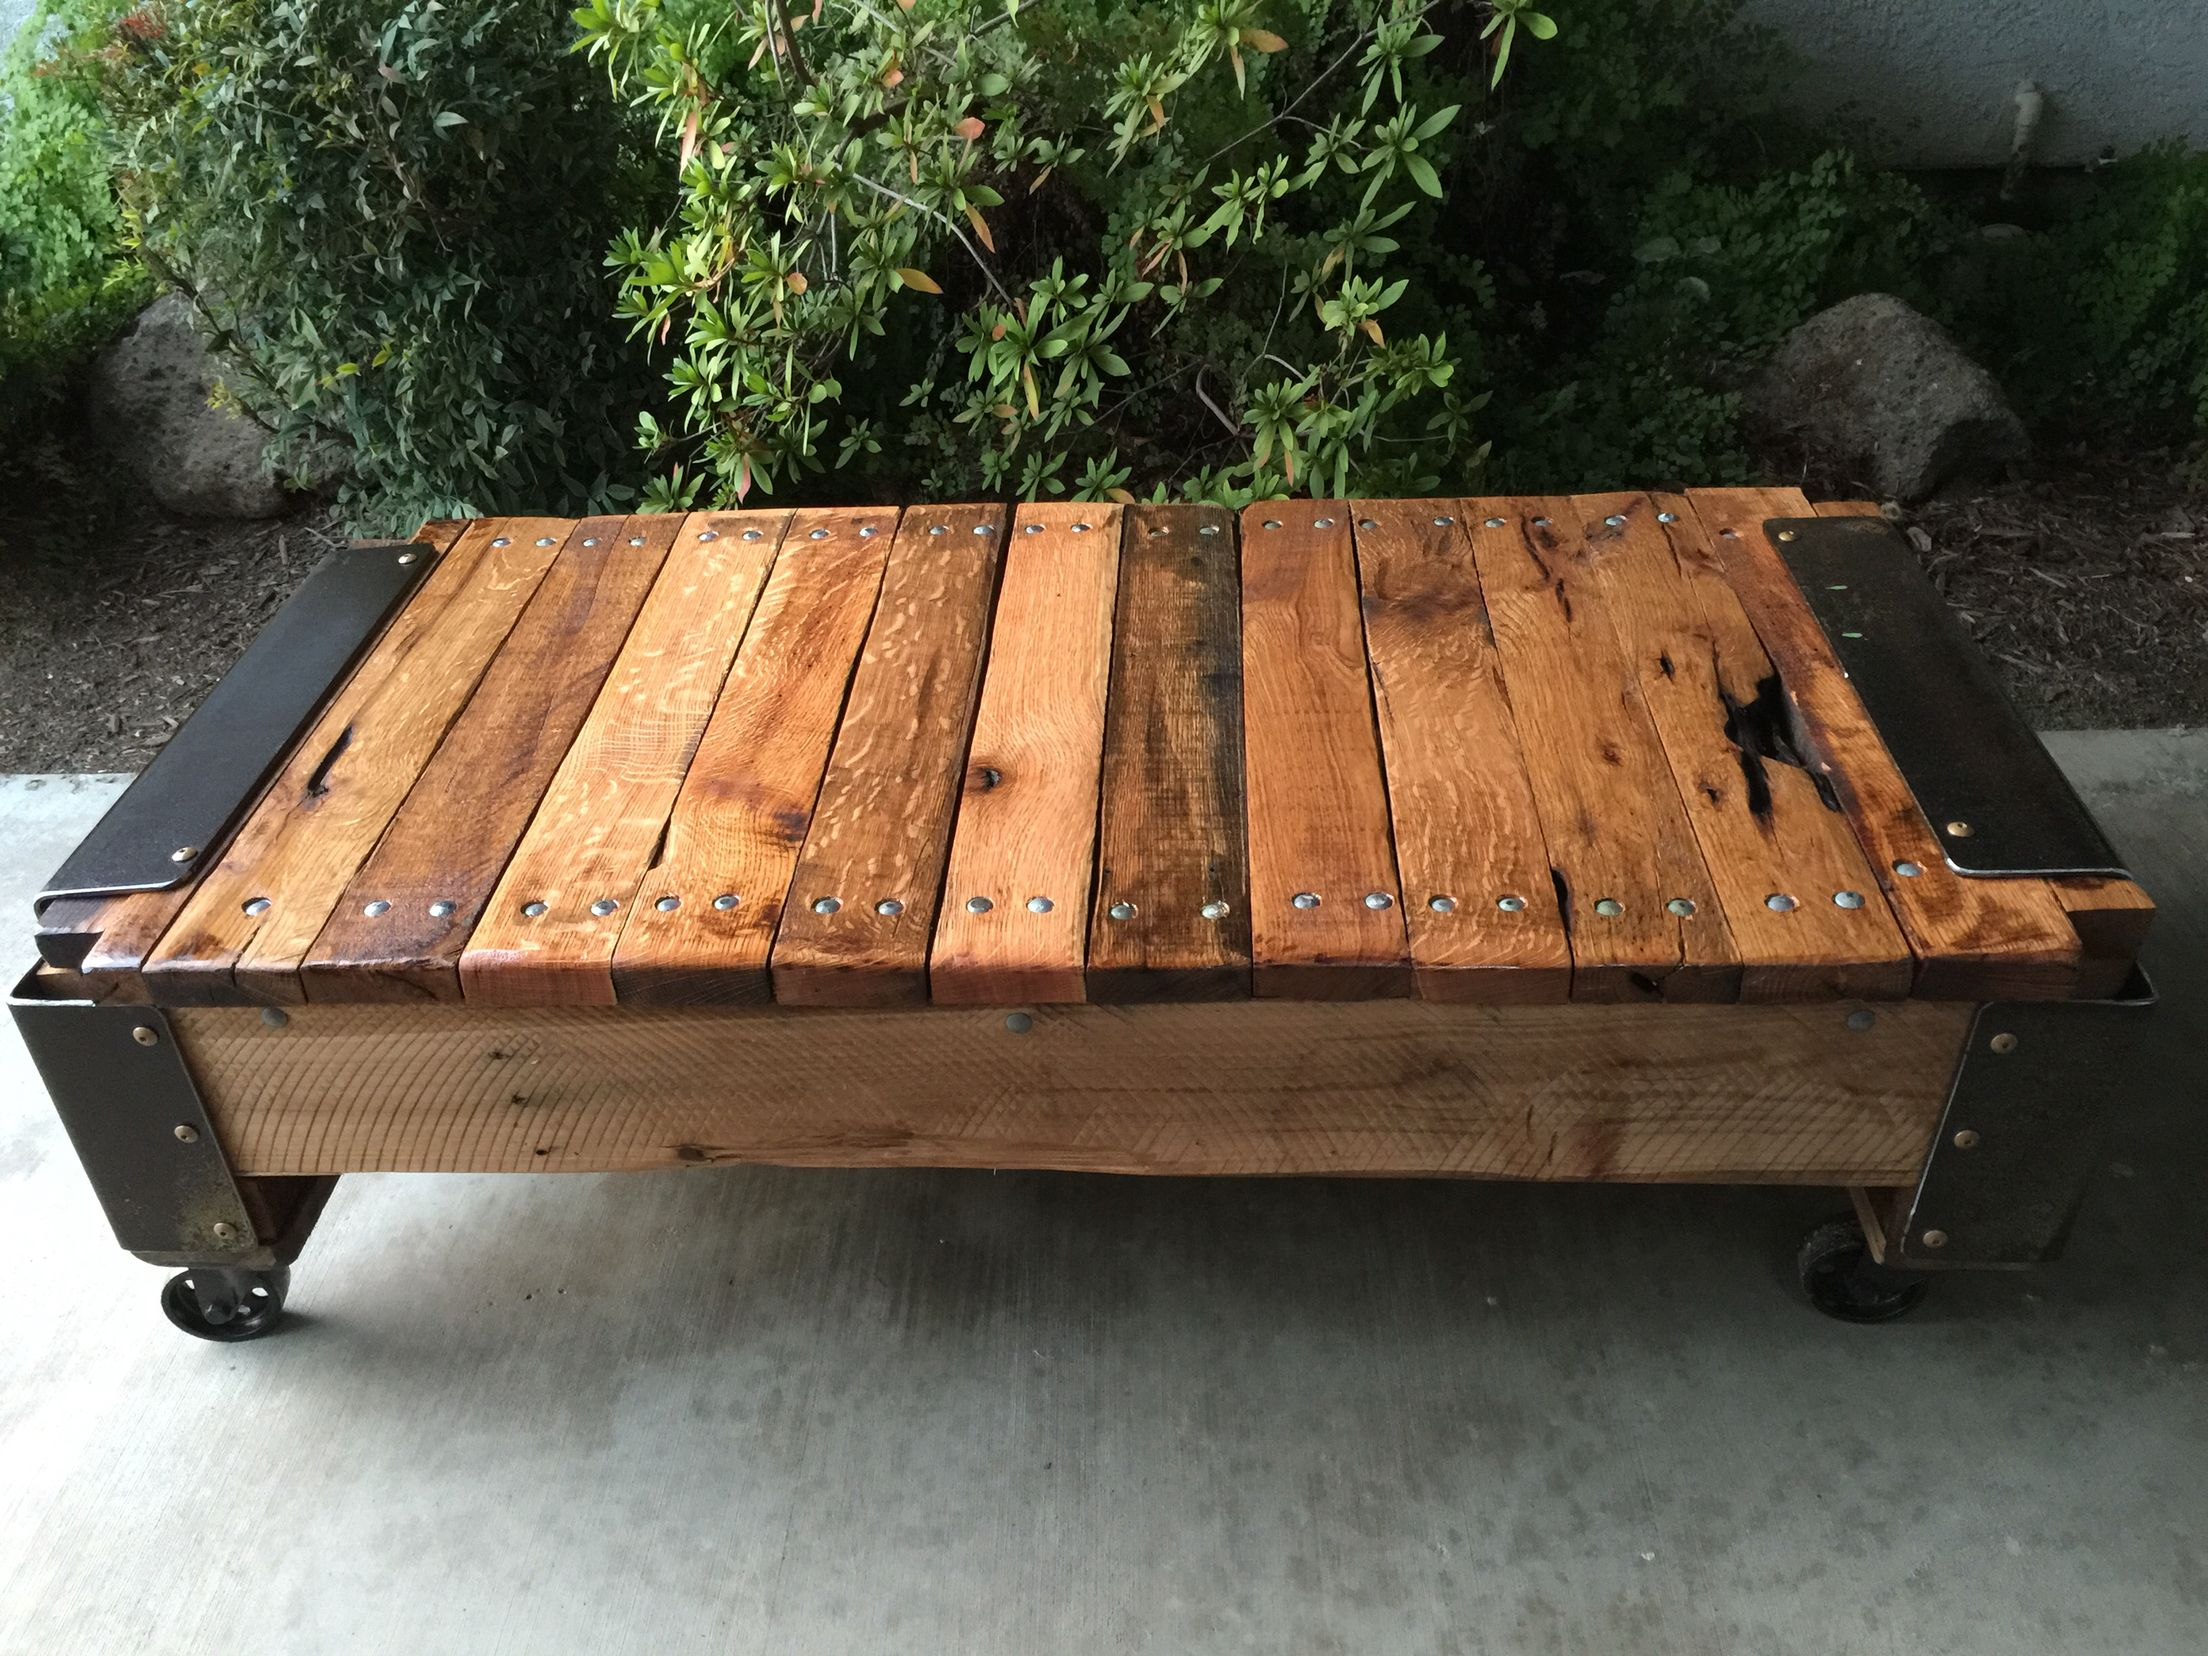 Pallet wood Lineberry factory cart coffee table made with reclaimed